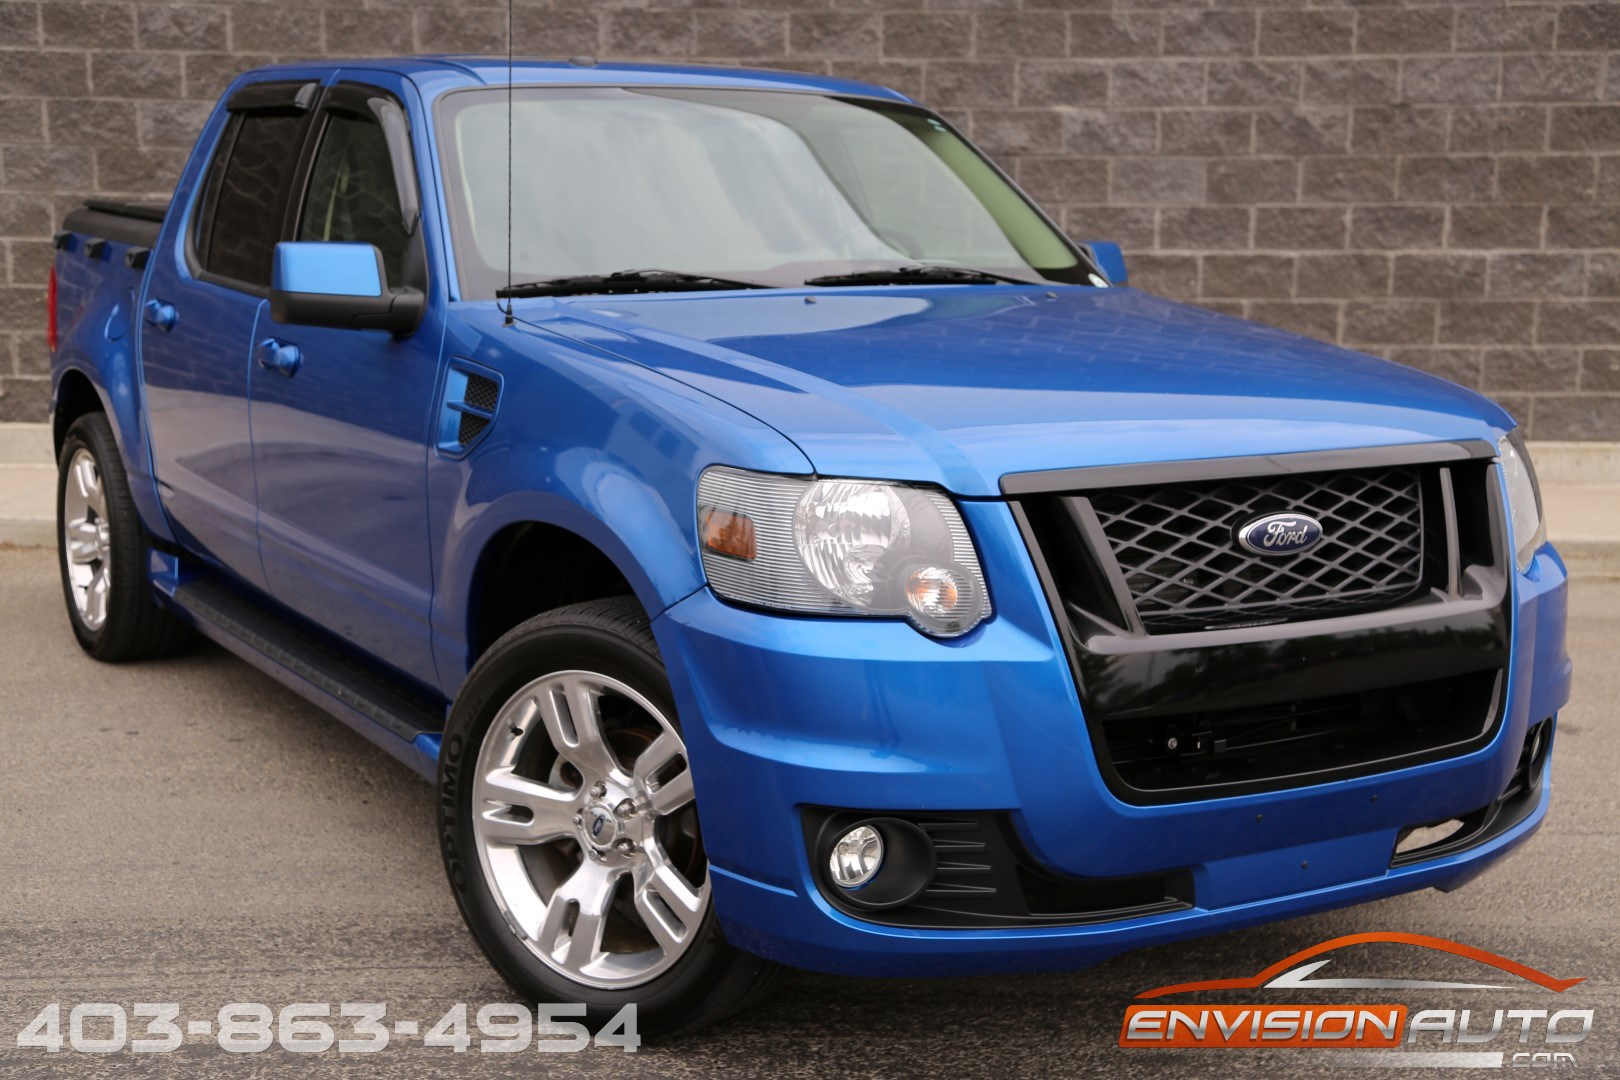 2010 Ford Sport Trac Adrenalin Awd One Owner Envision Auto Calgary Highline Luxury Sports